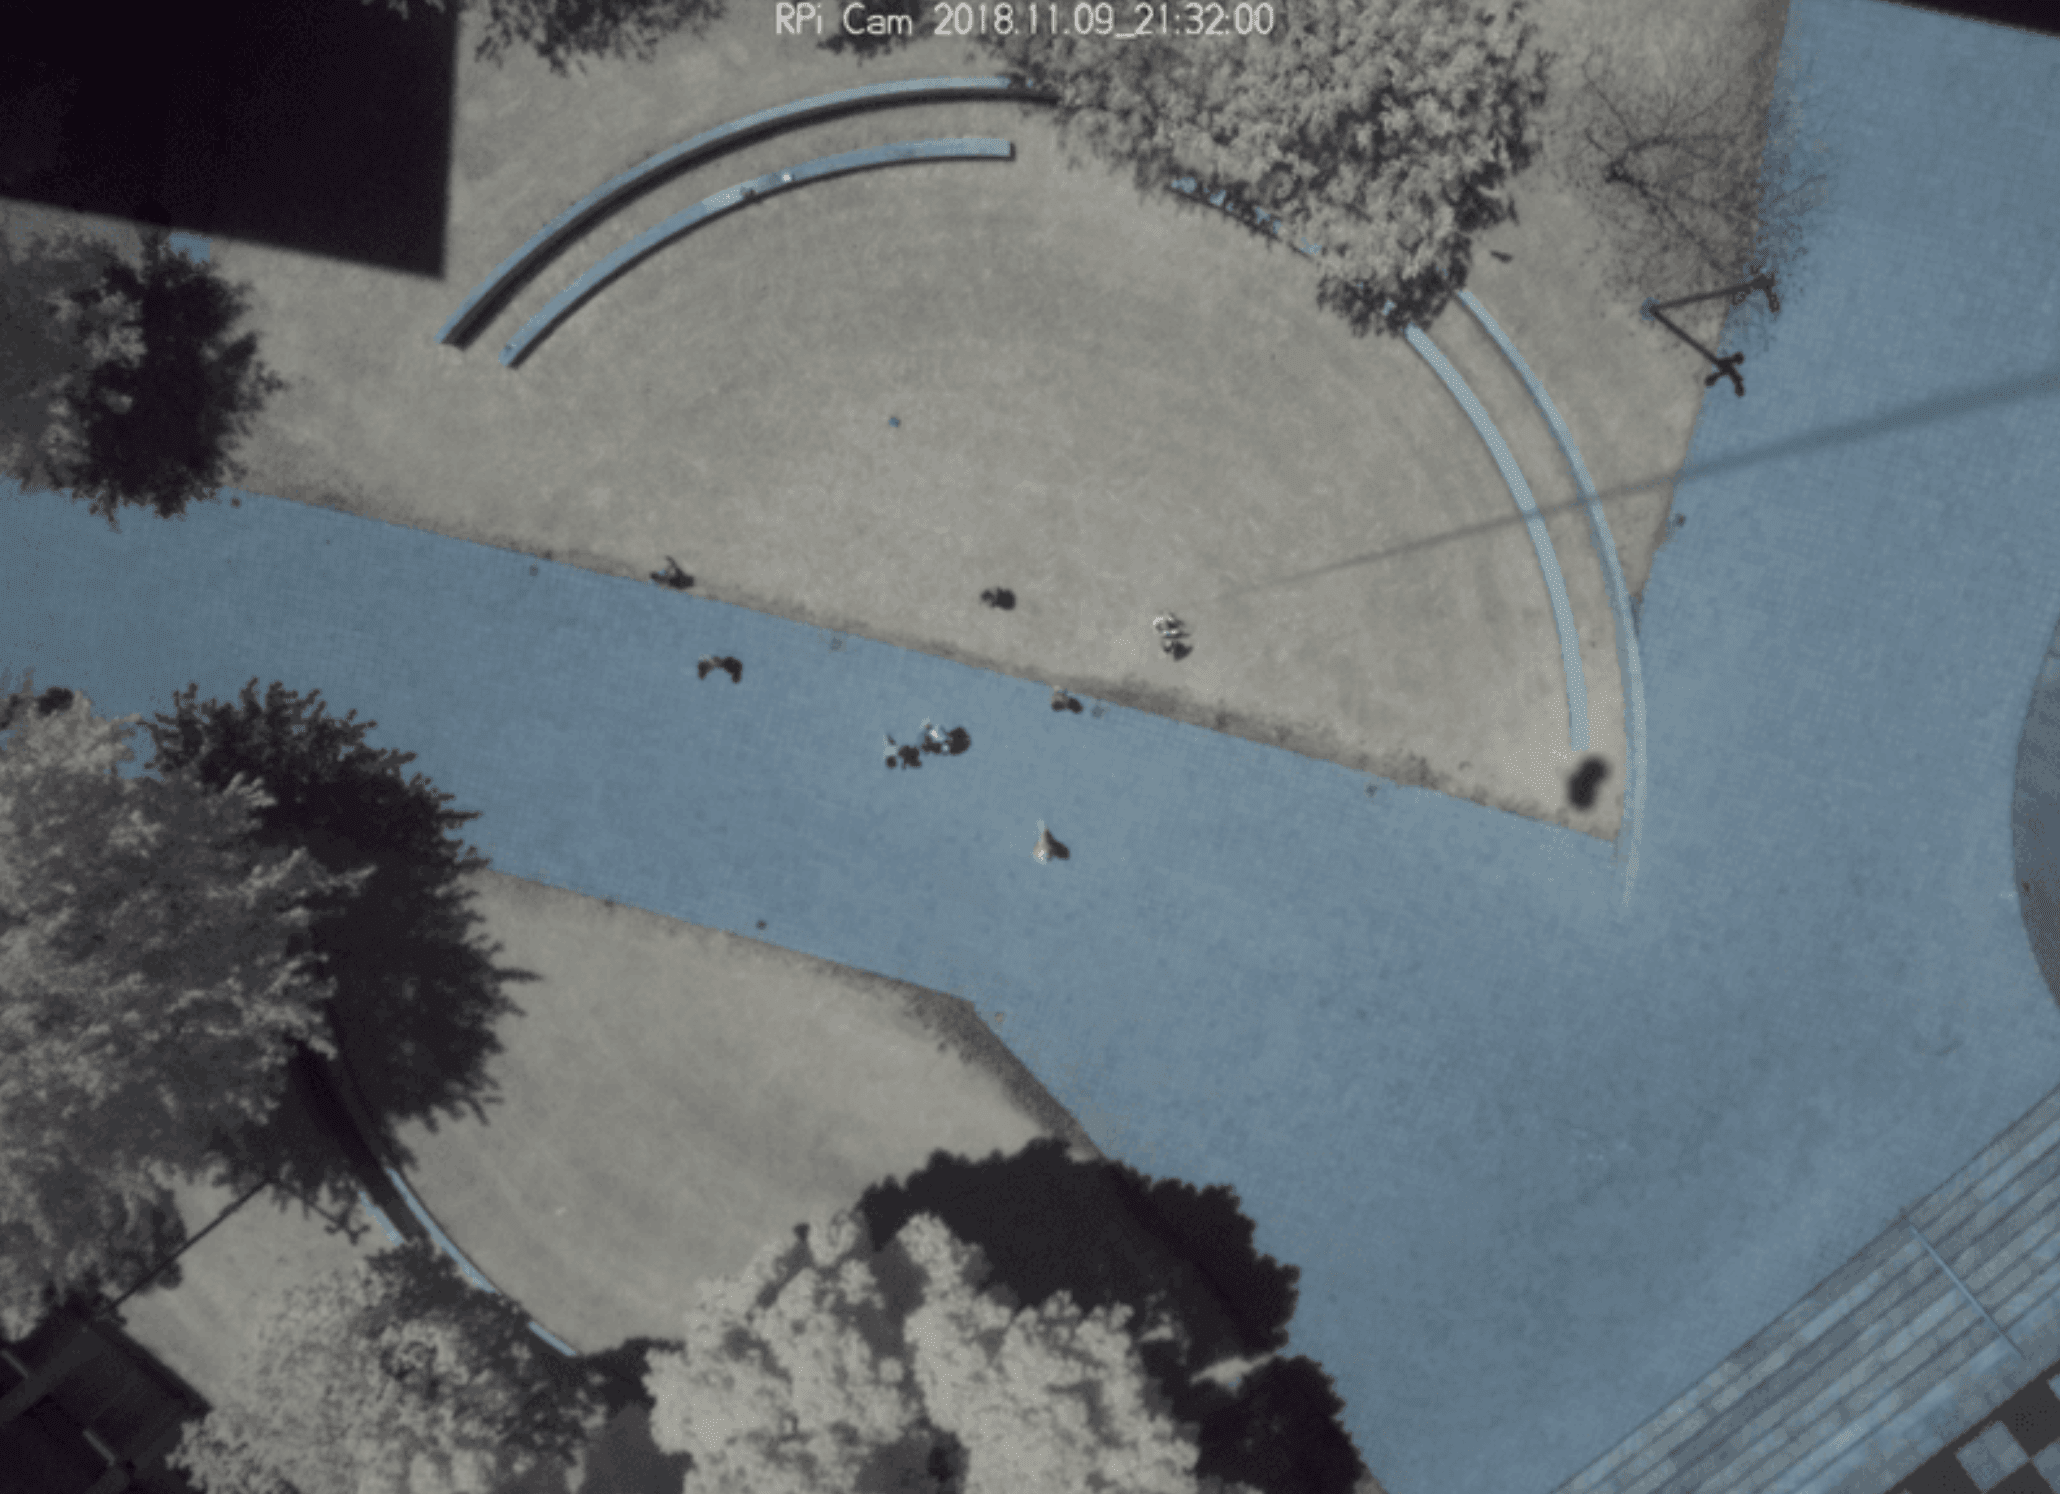 Aerial, infrared view of the MIT campus taken from a ballon during play-testing!